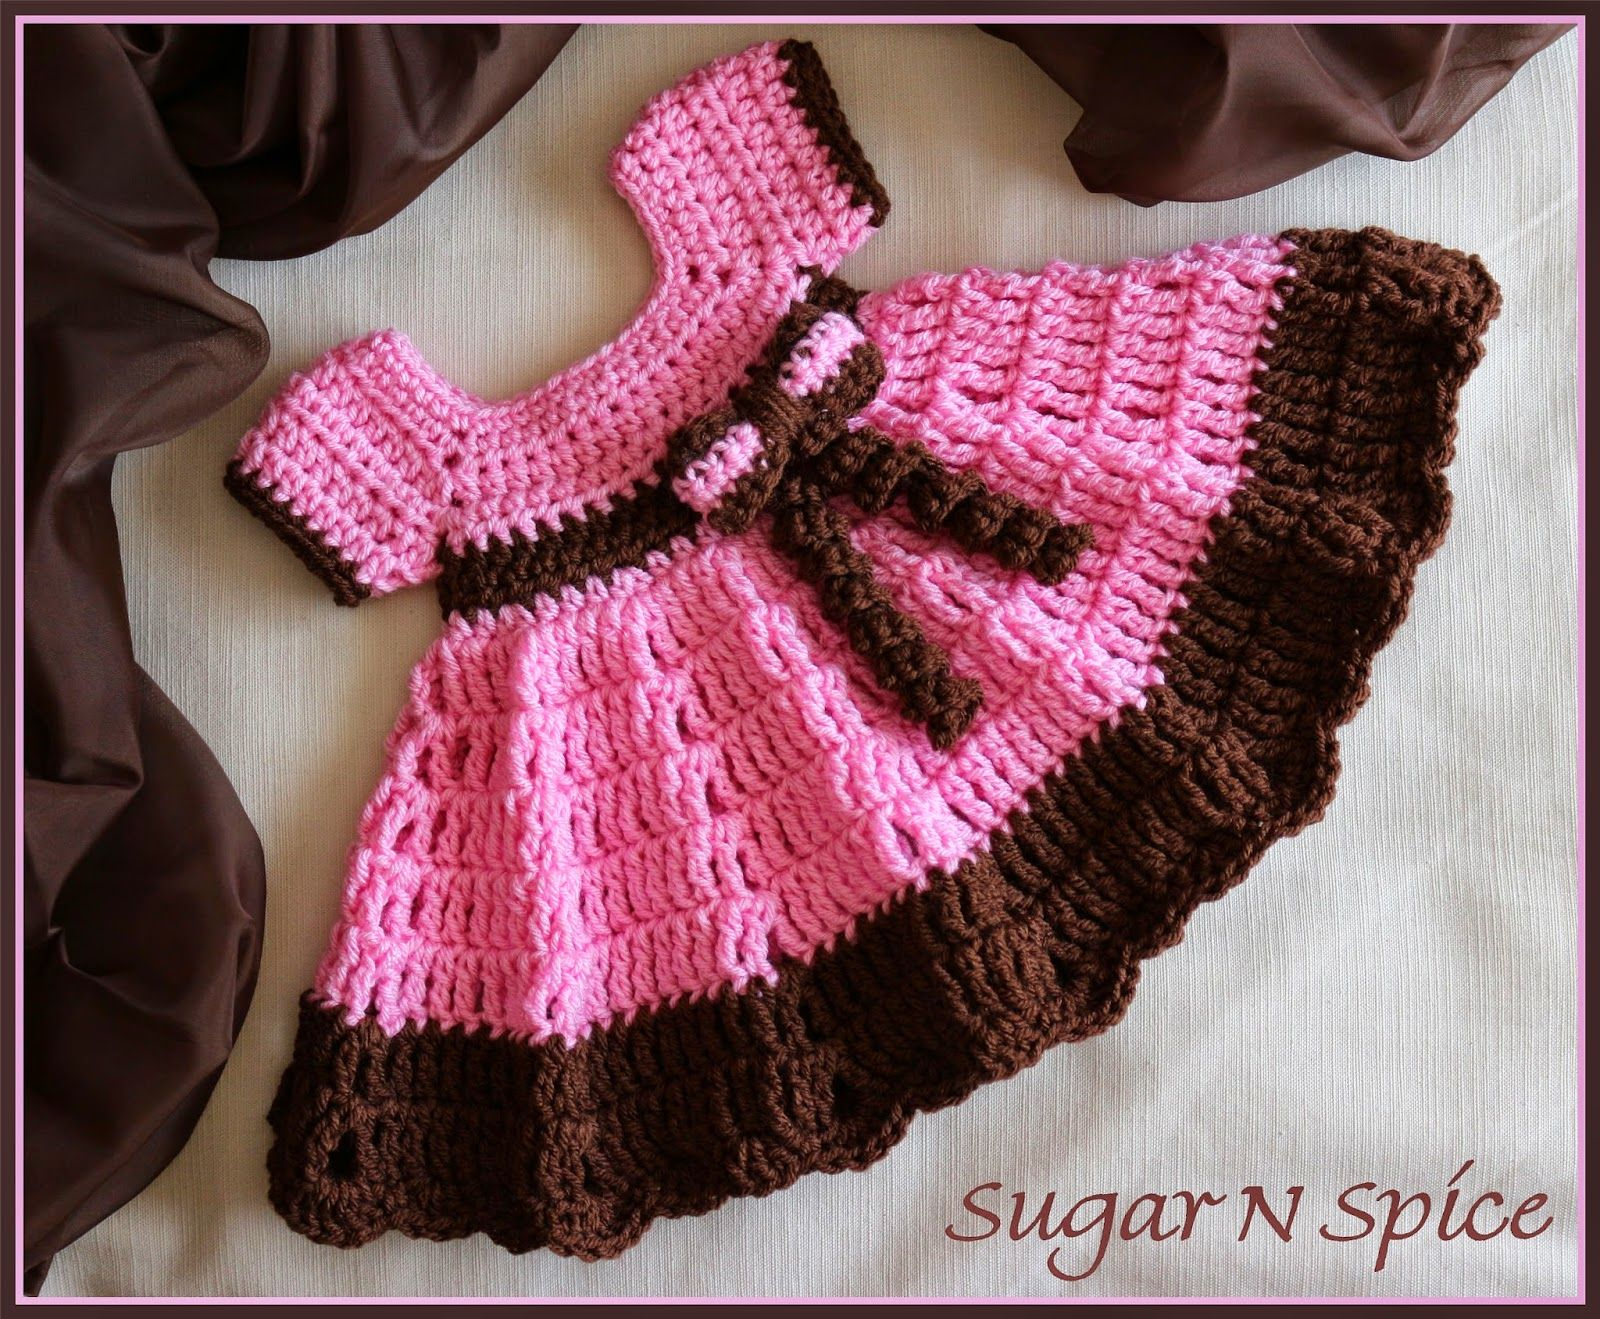 Crochet Supernova: Sugar N Spice Dress ~FREE PATTERN~ | Crochet Baby ...